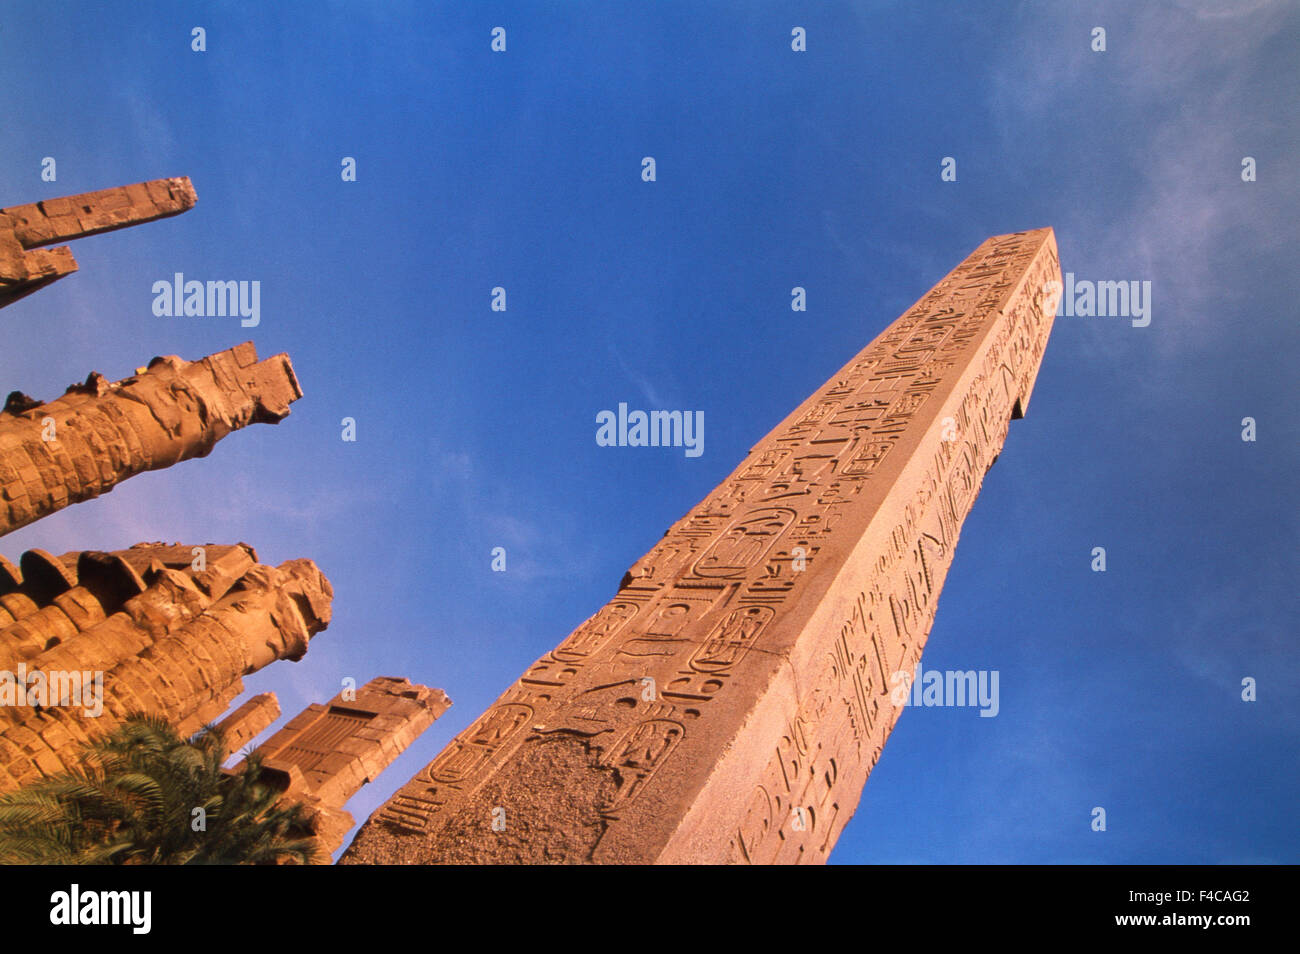 Egypt, Upper Egypt, Luxor, Karnak, Amun Temple, Obelisk Central Court. (Large format sizes available) - Stock Image